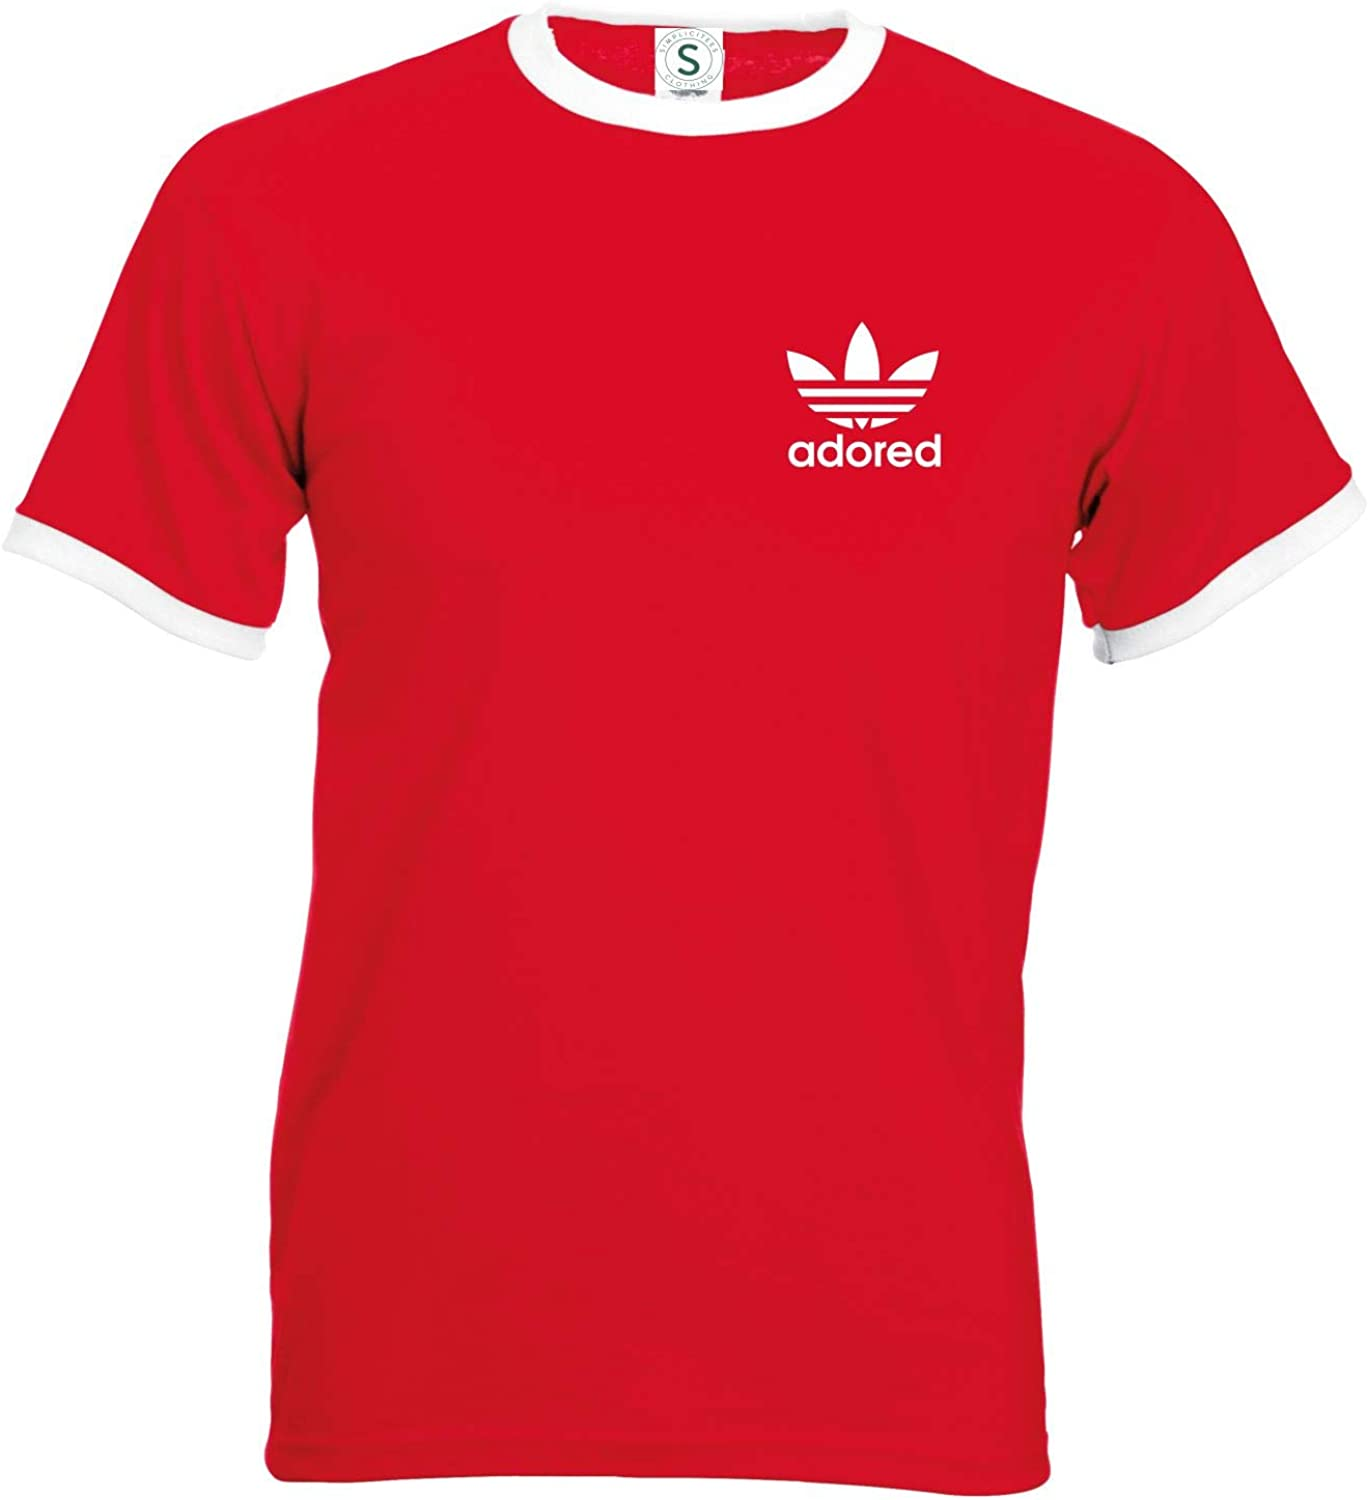 Fruit of the Loom Simplicitees Stone Roses Ian Brown Wanna Be Adored Tribute T-Shirt Spike Island Ringer